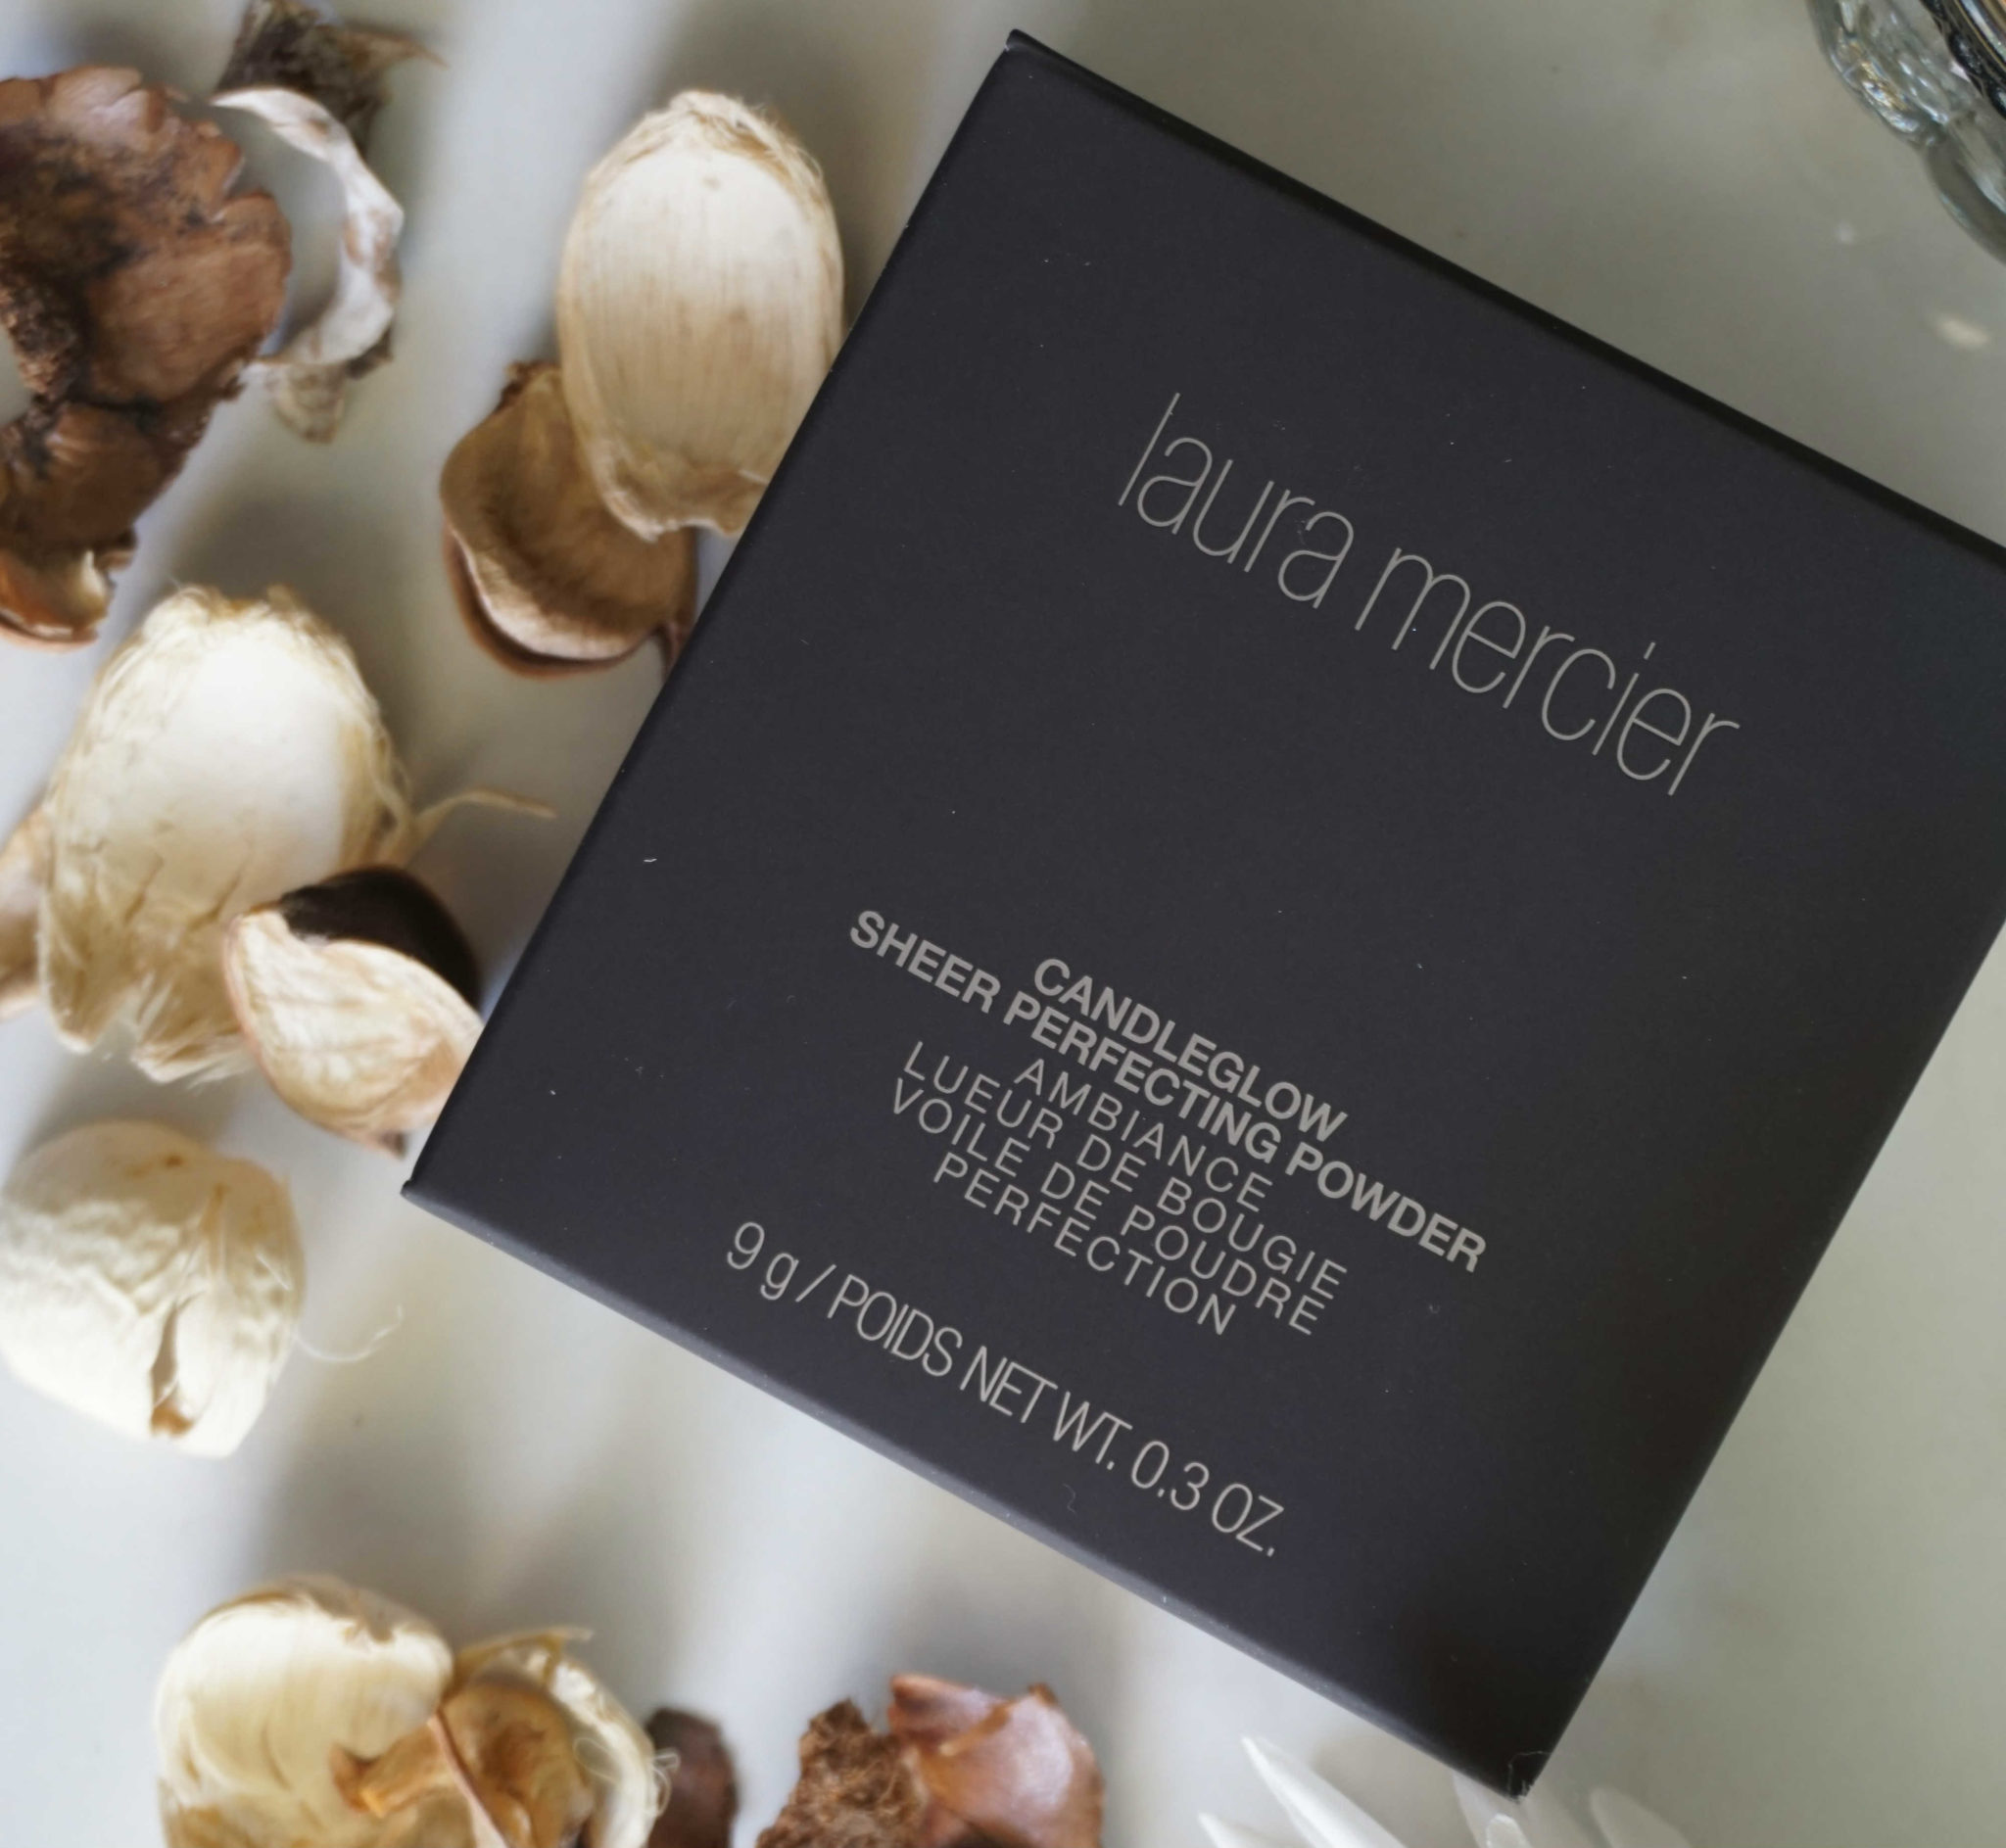 Laura Mercier Candleglow Review: Candle Light Glow In A Finishing Powder?